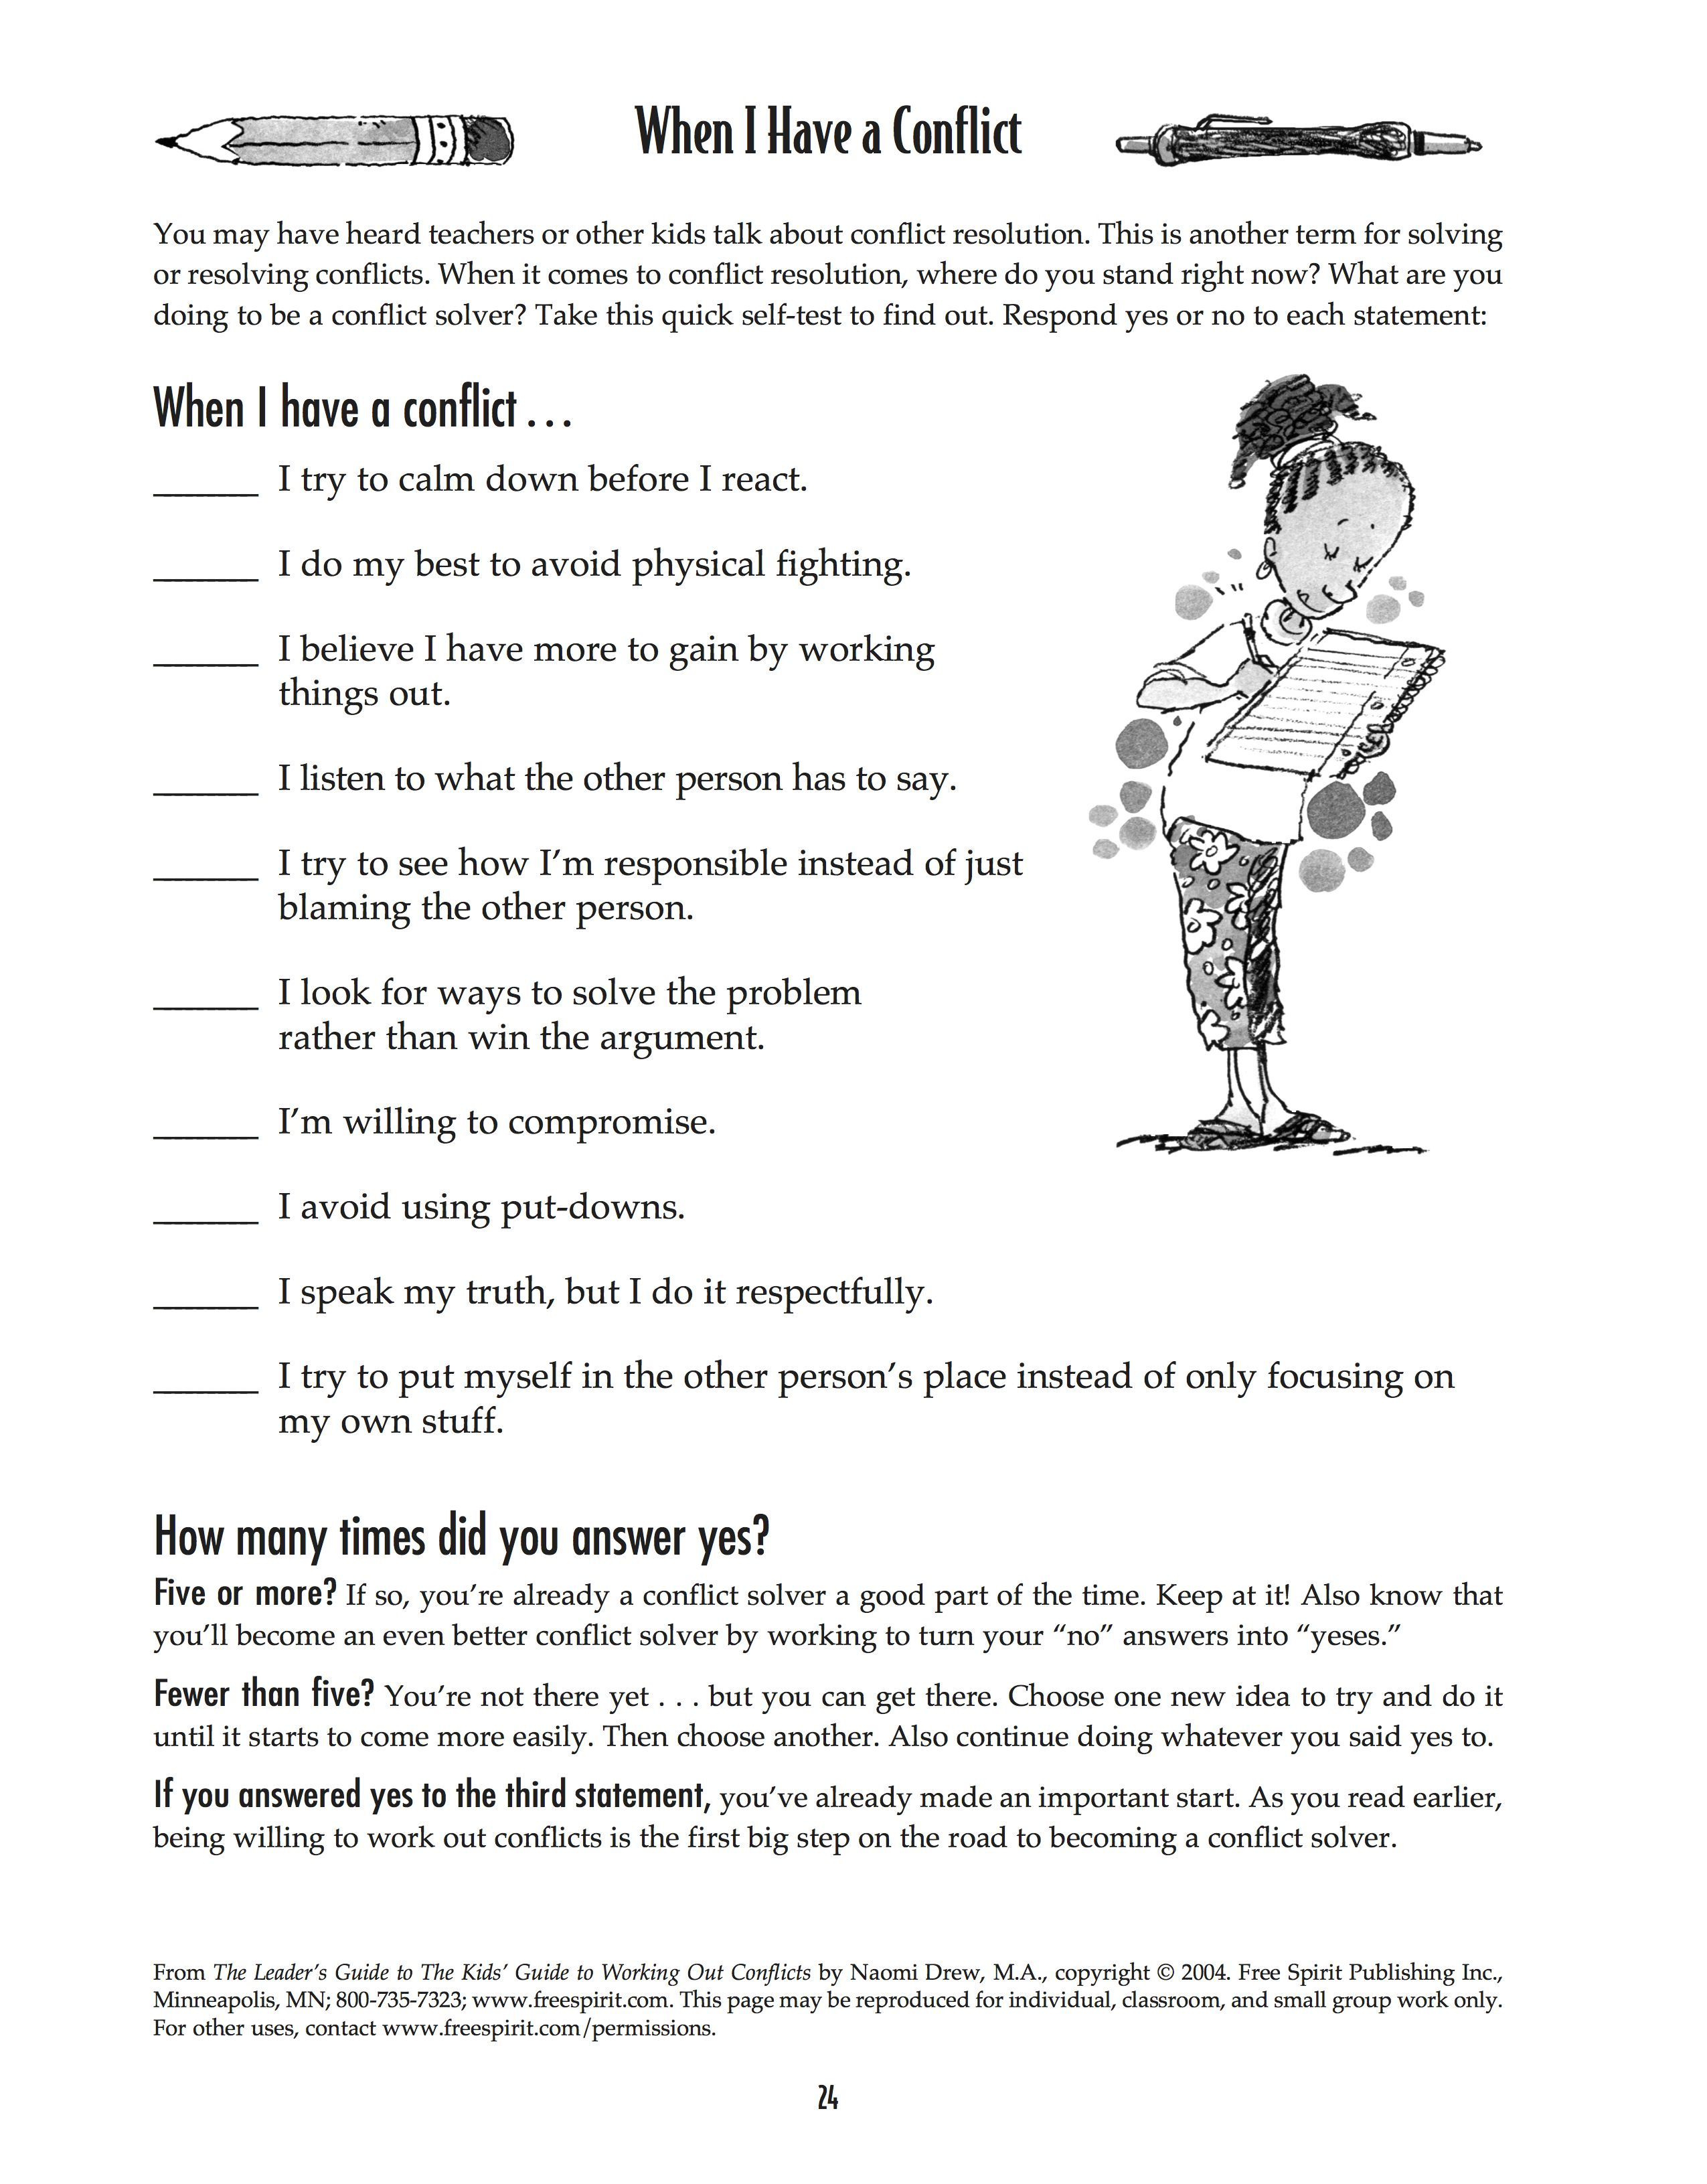 Free Printable Worksheet: When I Have A Conflict. A Quick Self-Test | Free Printable Self Control Worksheets